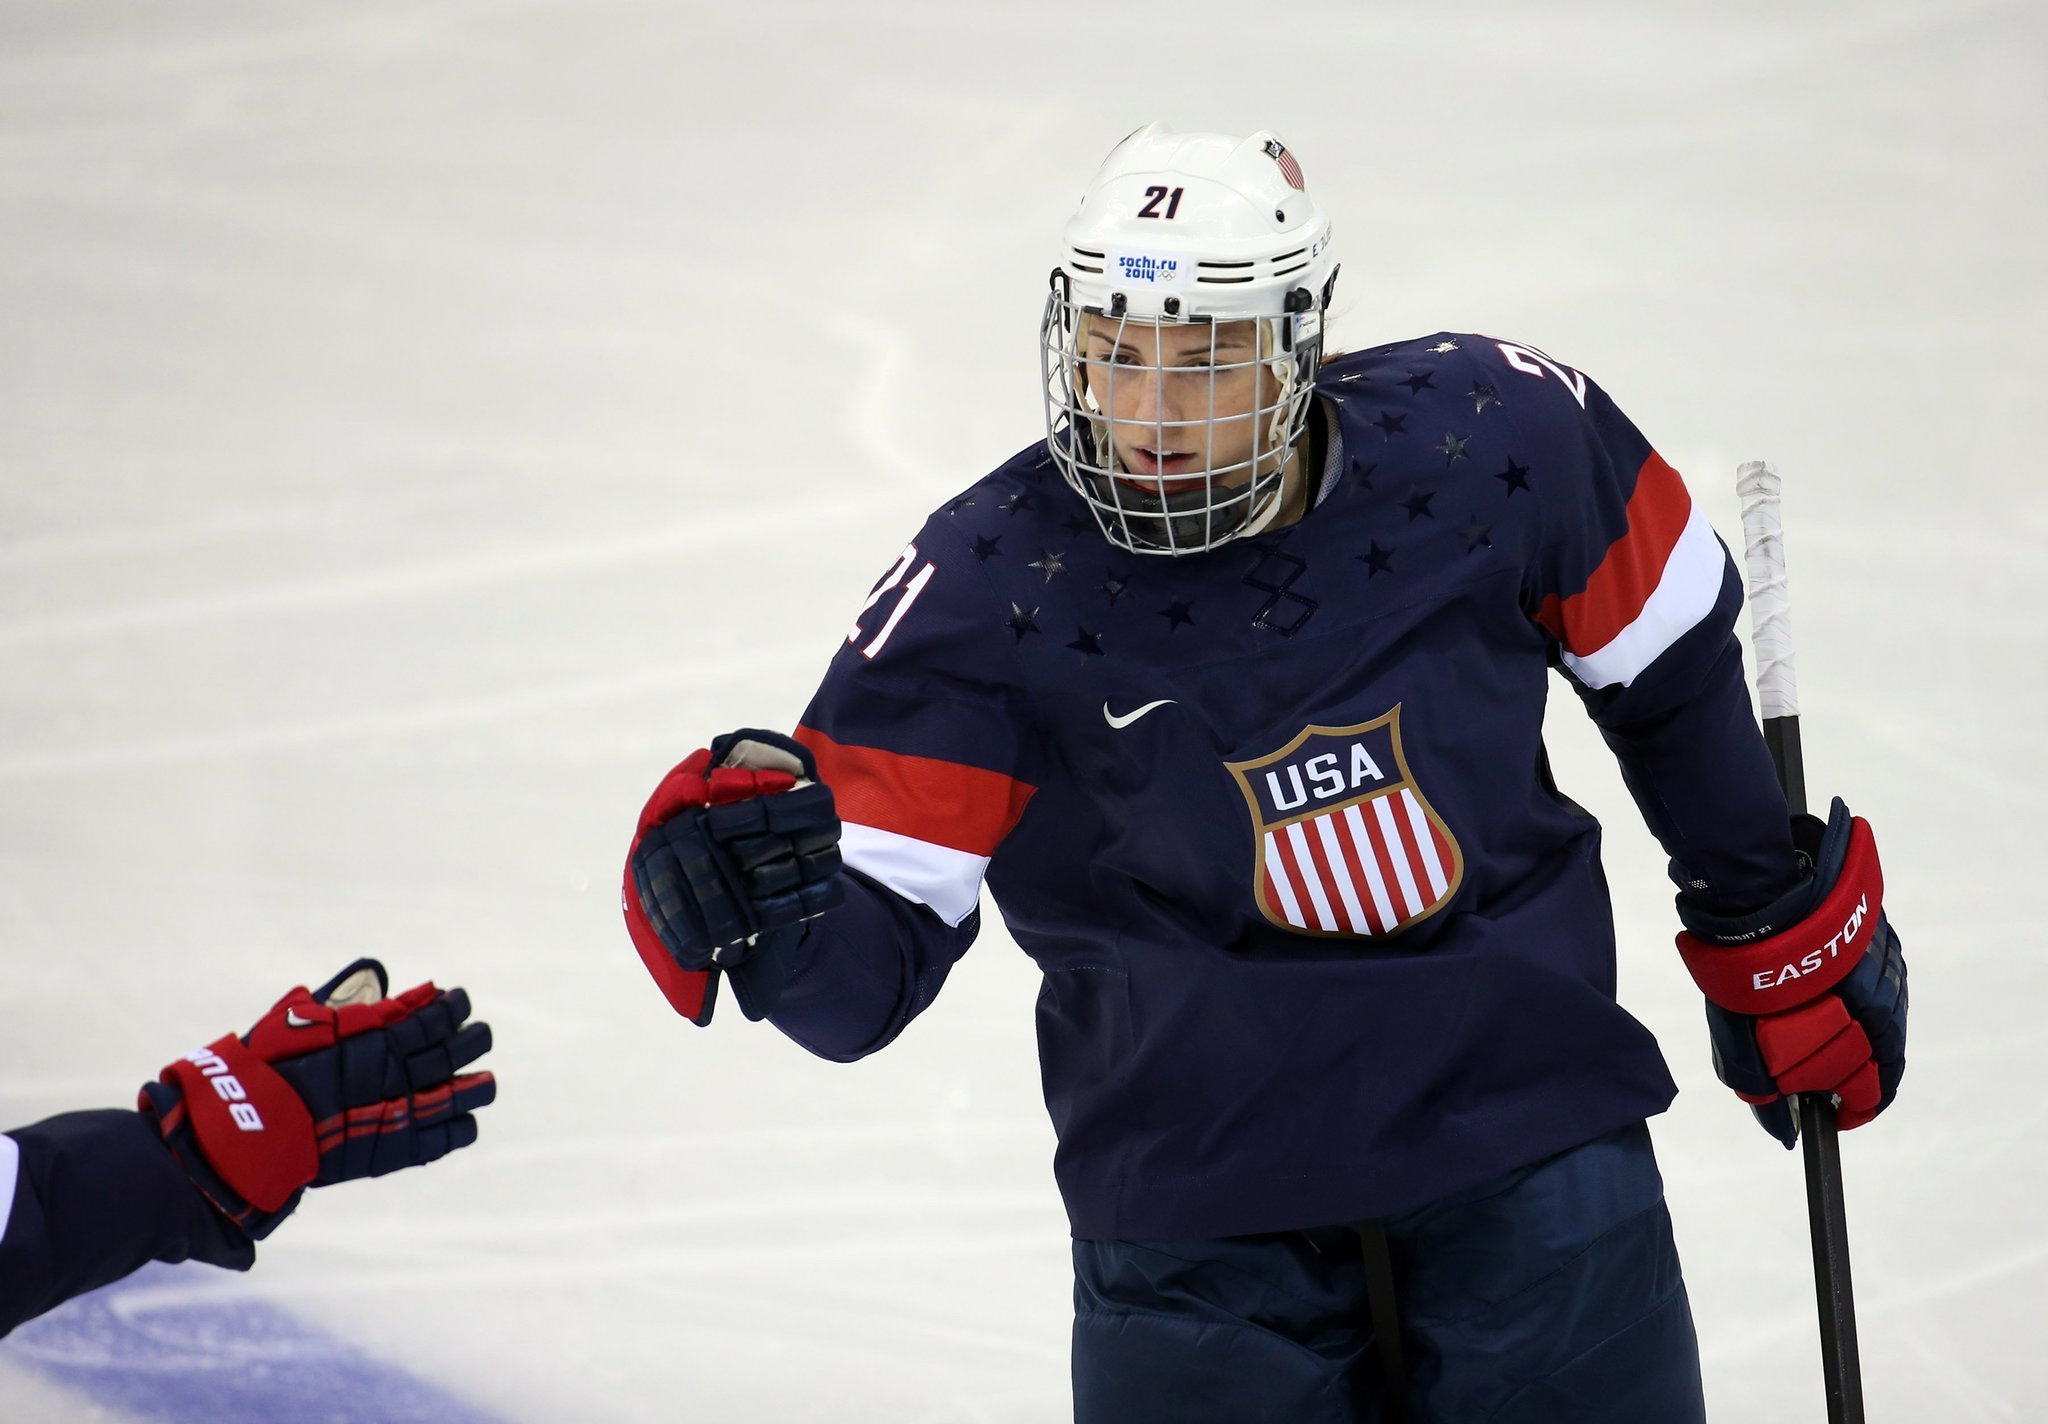 US women's hockey players to boycott world championships over wage dispute